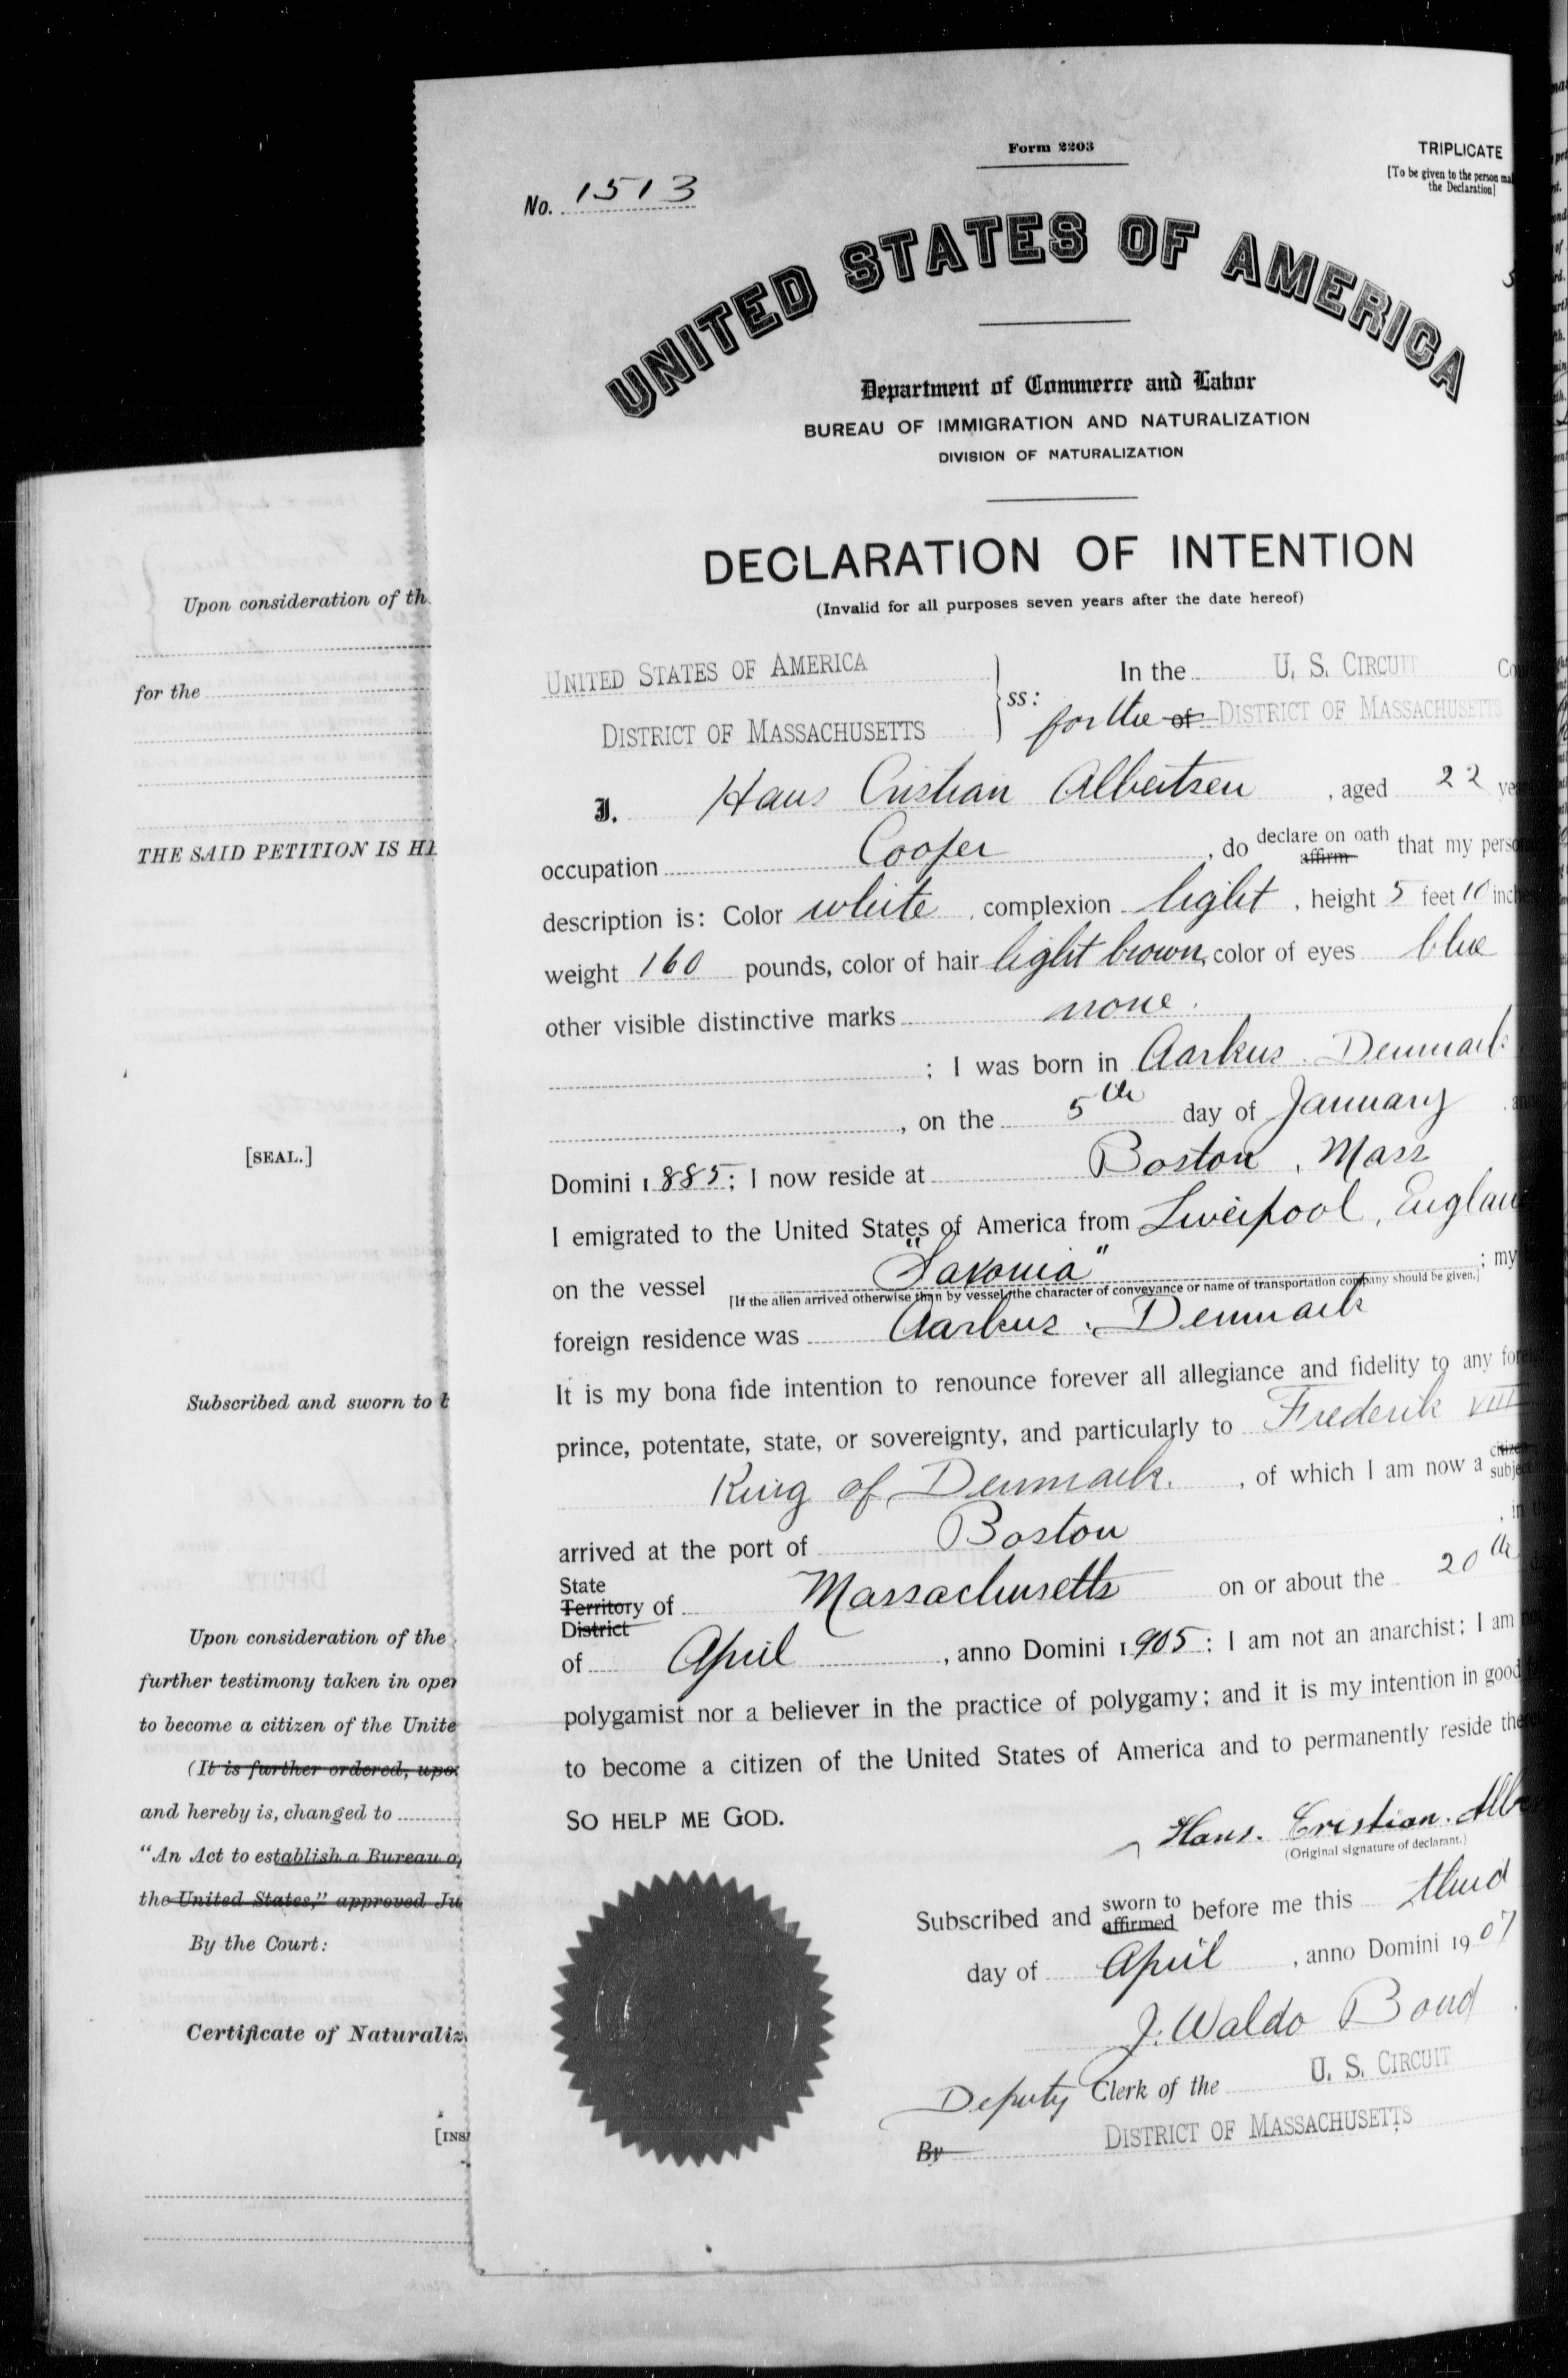 Petition for Naturalization of Hans Cristian Albertsen